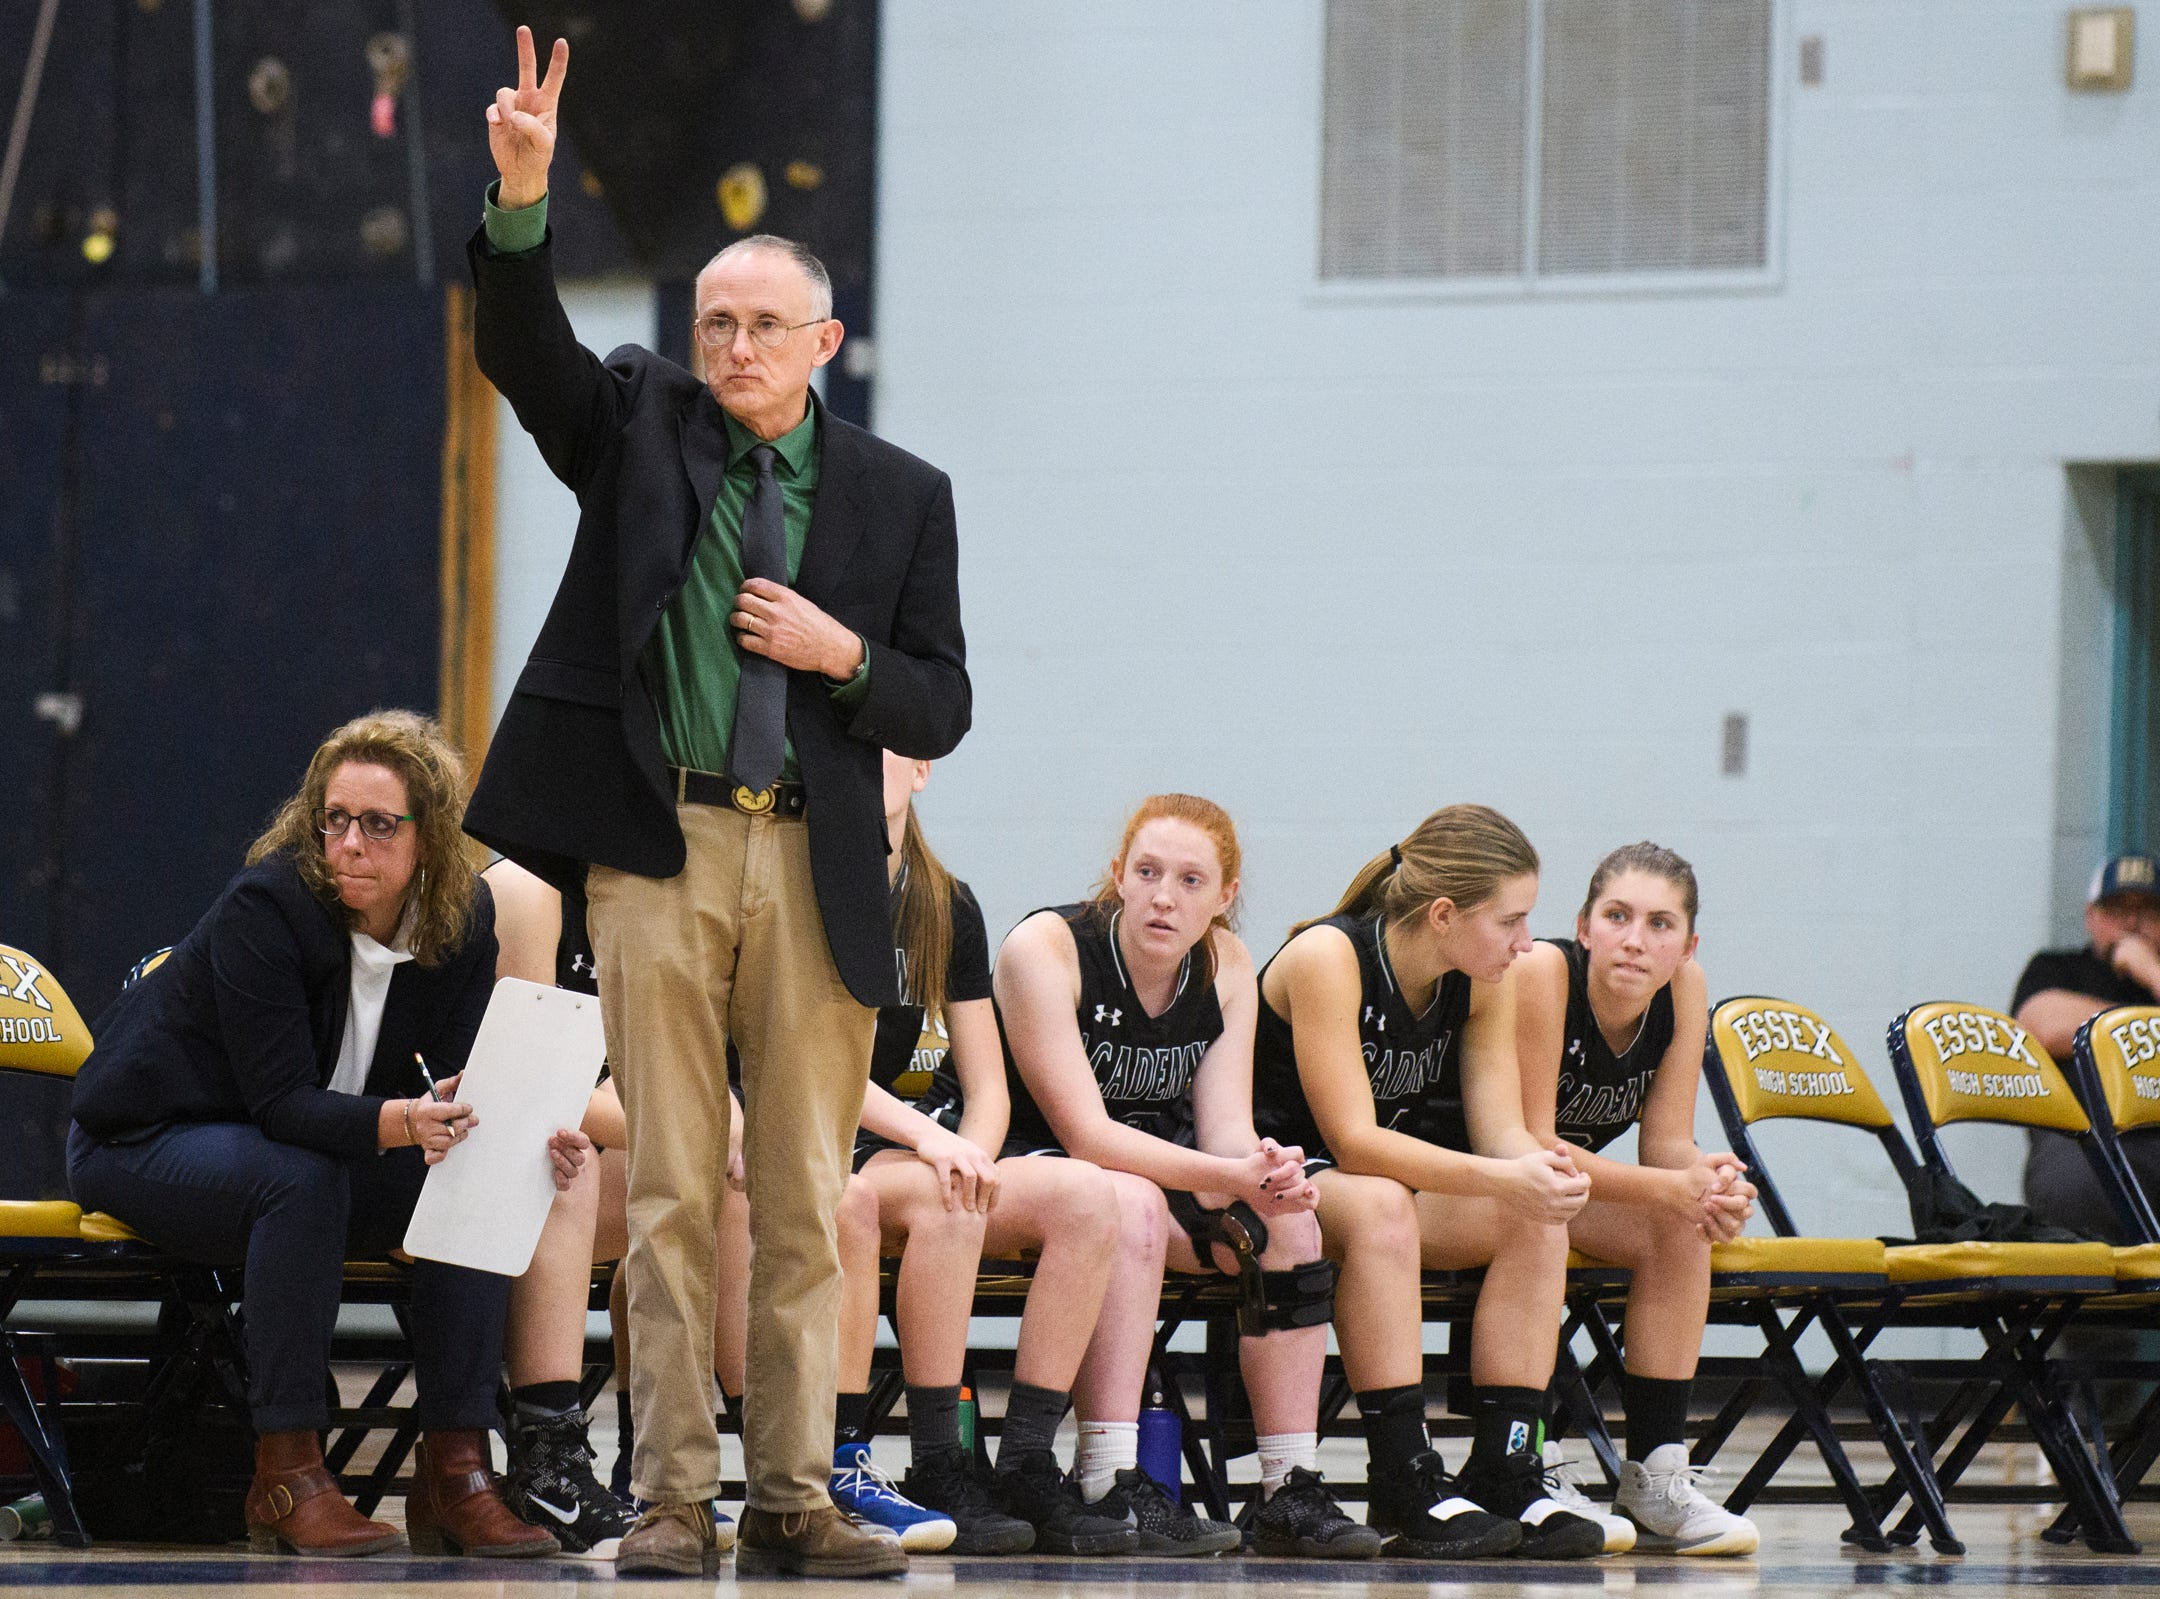 St. Johnsbury head coach Jack Driscoll calls a play during the girls basketball game between the St. Johnsbury Hilltoppers and the Essex Hornets at Essex High School on Thursday night January 17, 2019 in Essex.